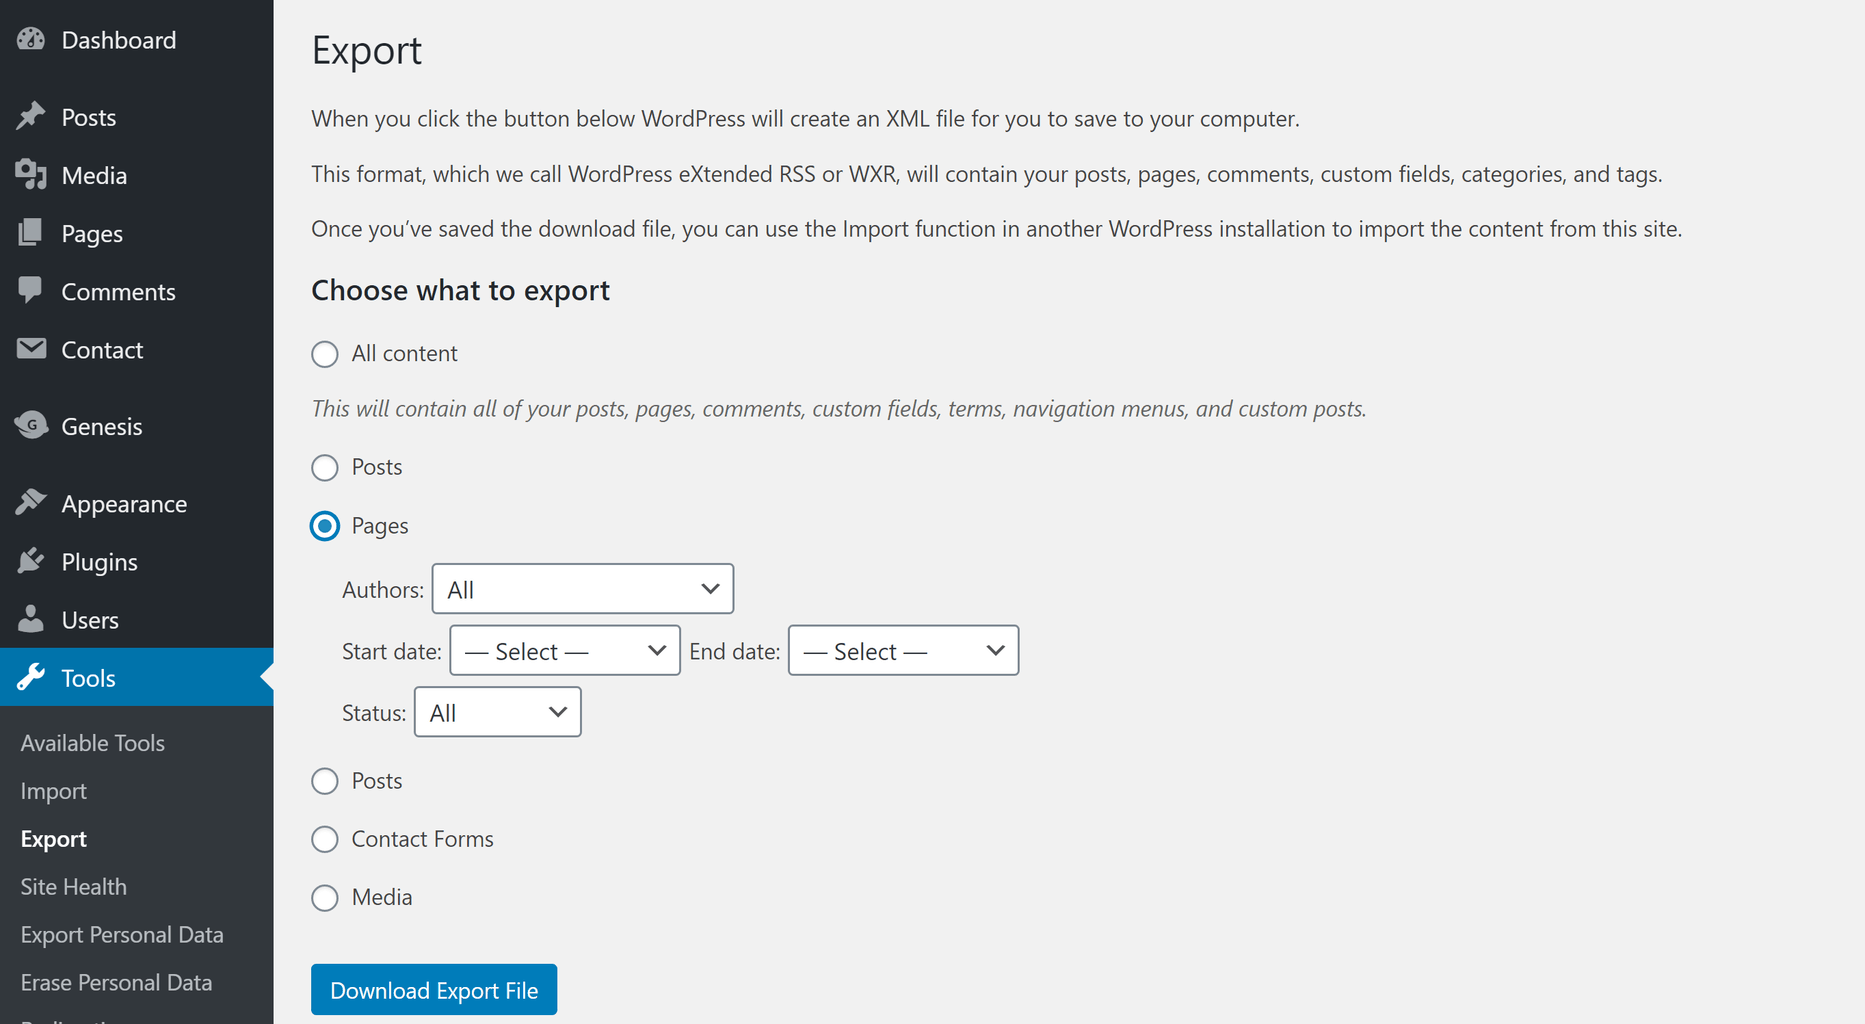 Use the WordPress export tool to create an XML file that contains your site pages.